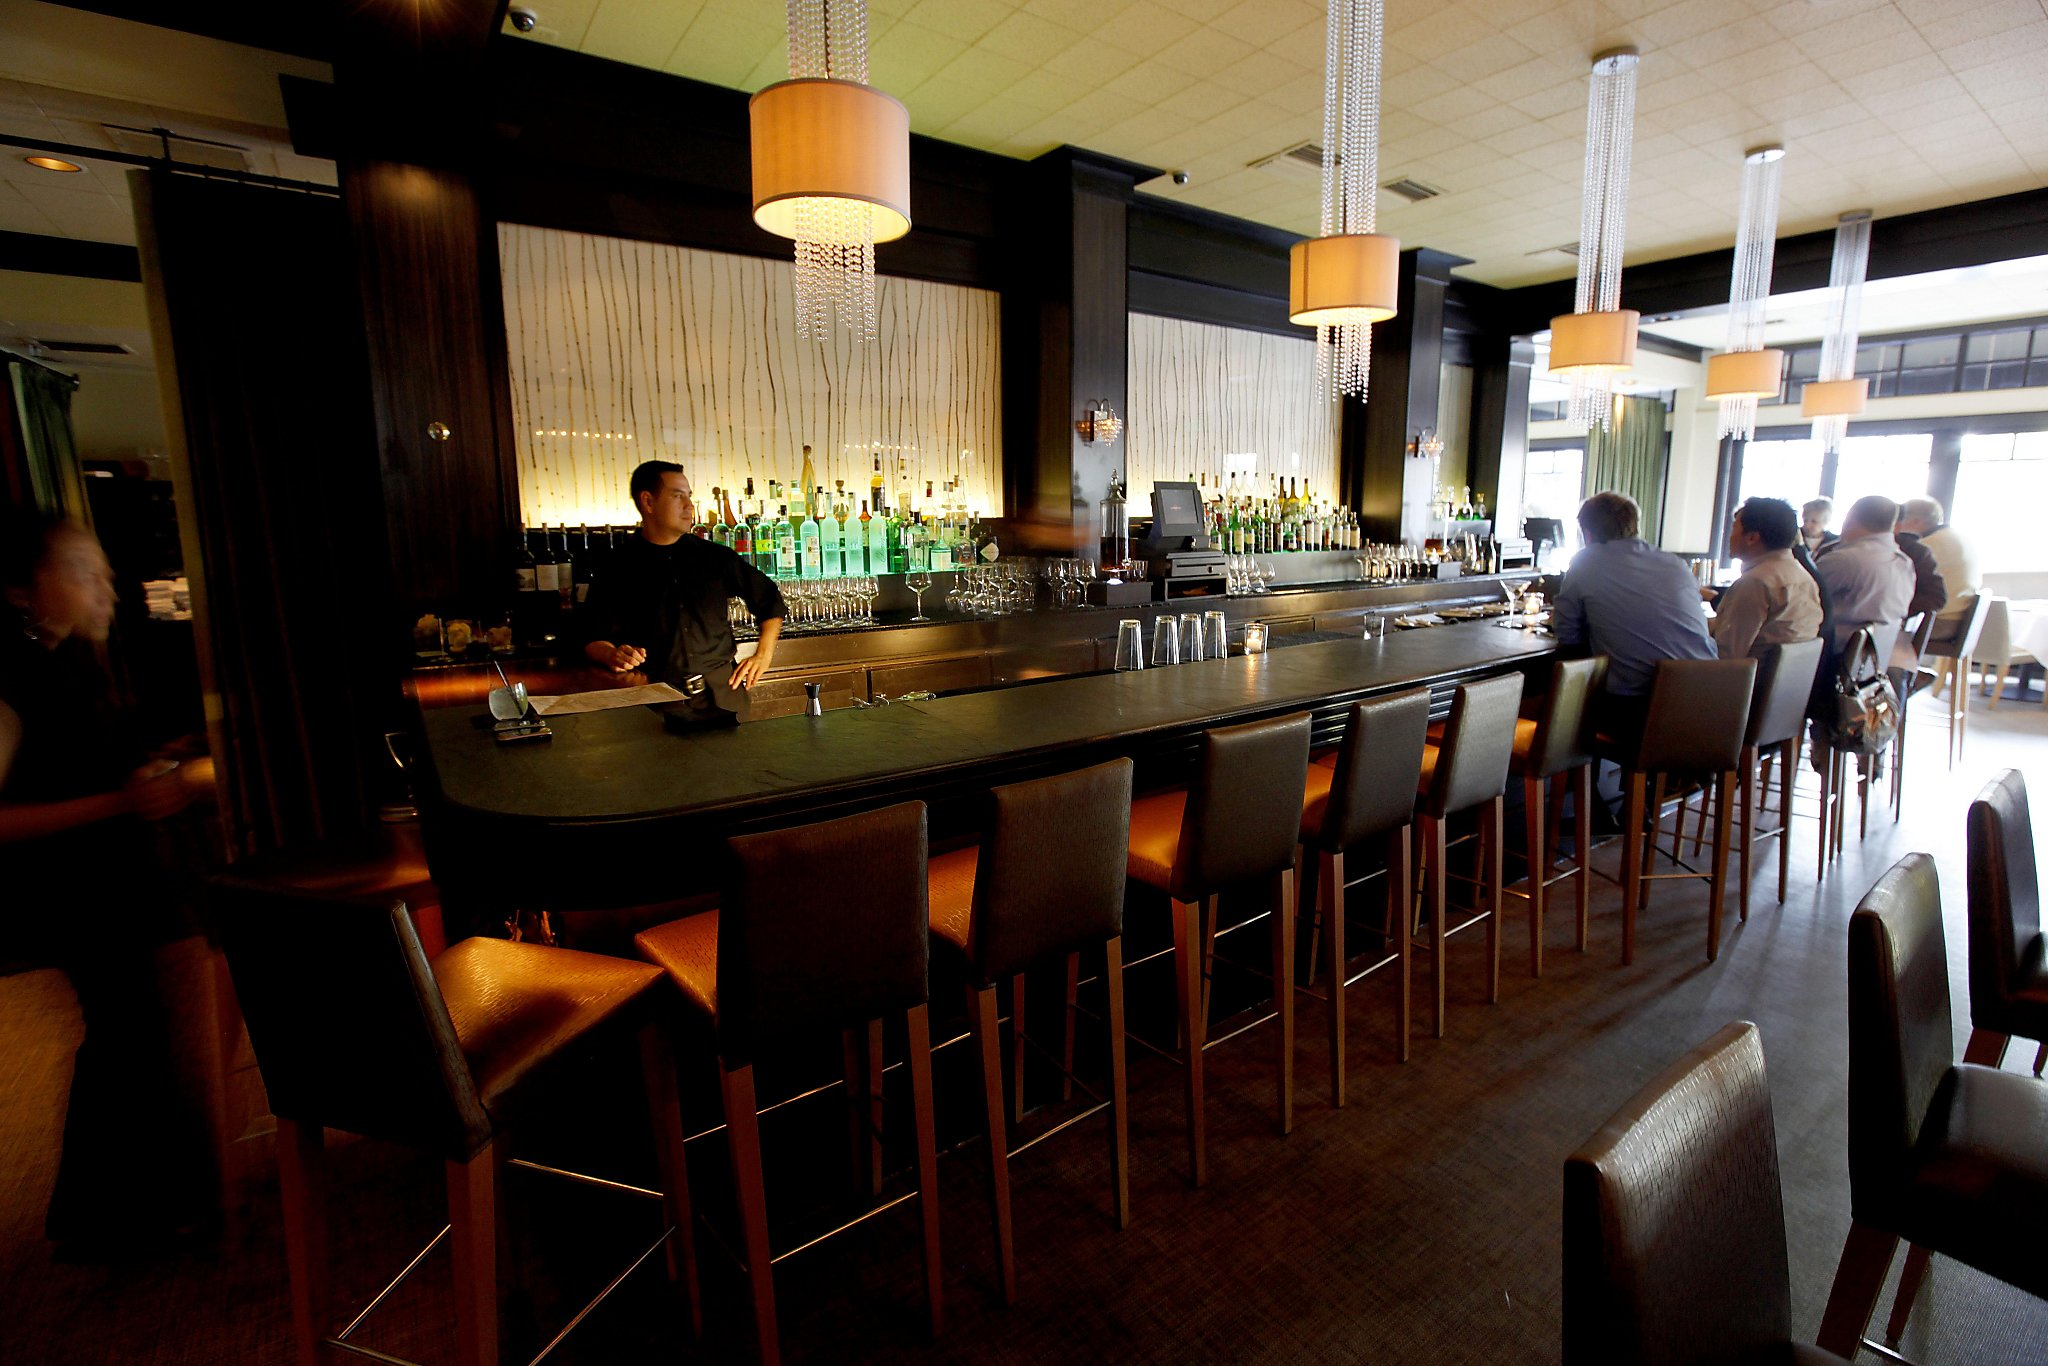 Tamarine's tame take on Vietnamese cuisine in the heart of tech